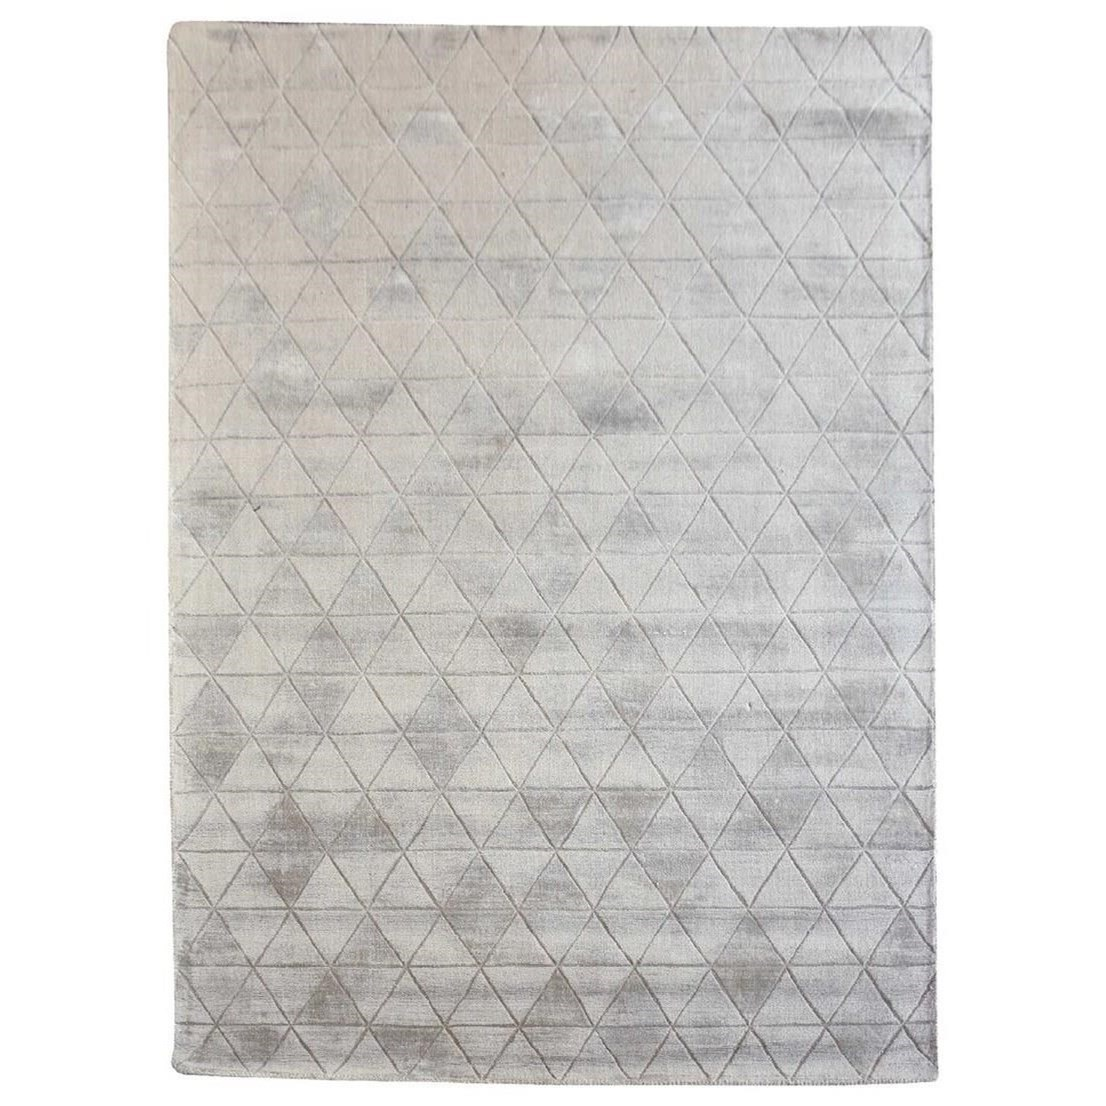 Rugs Jaffna Sand 5 X 8 Rug by Uttermost at Adcock Furniture